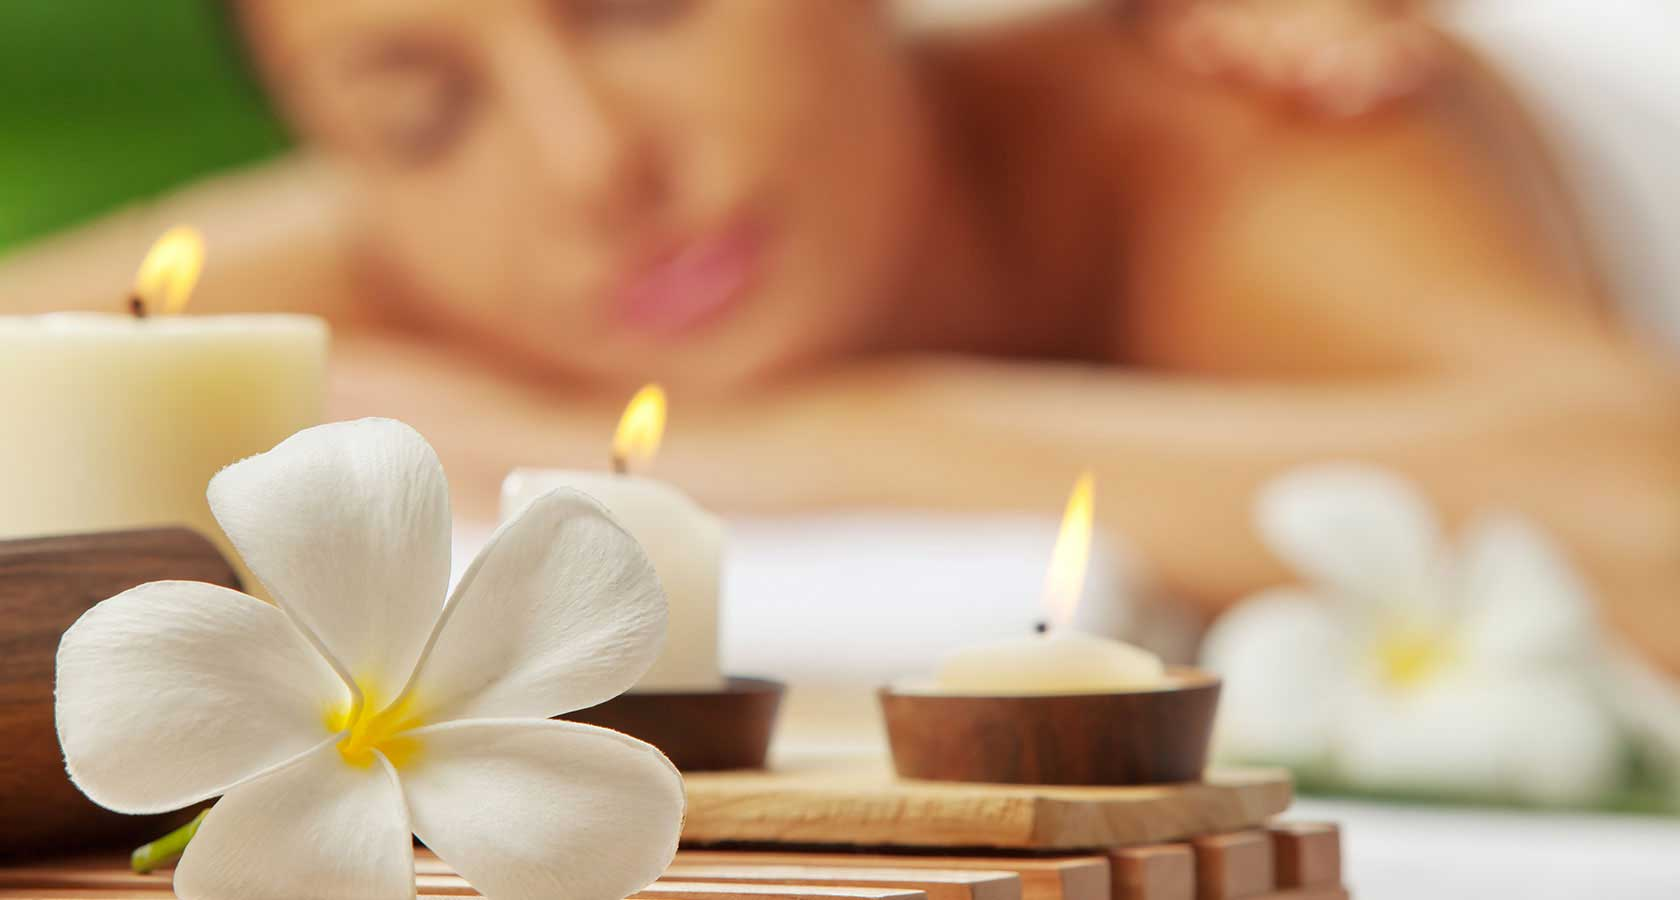 White flower, candles and woman enjoying spa treatment out of focus in background